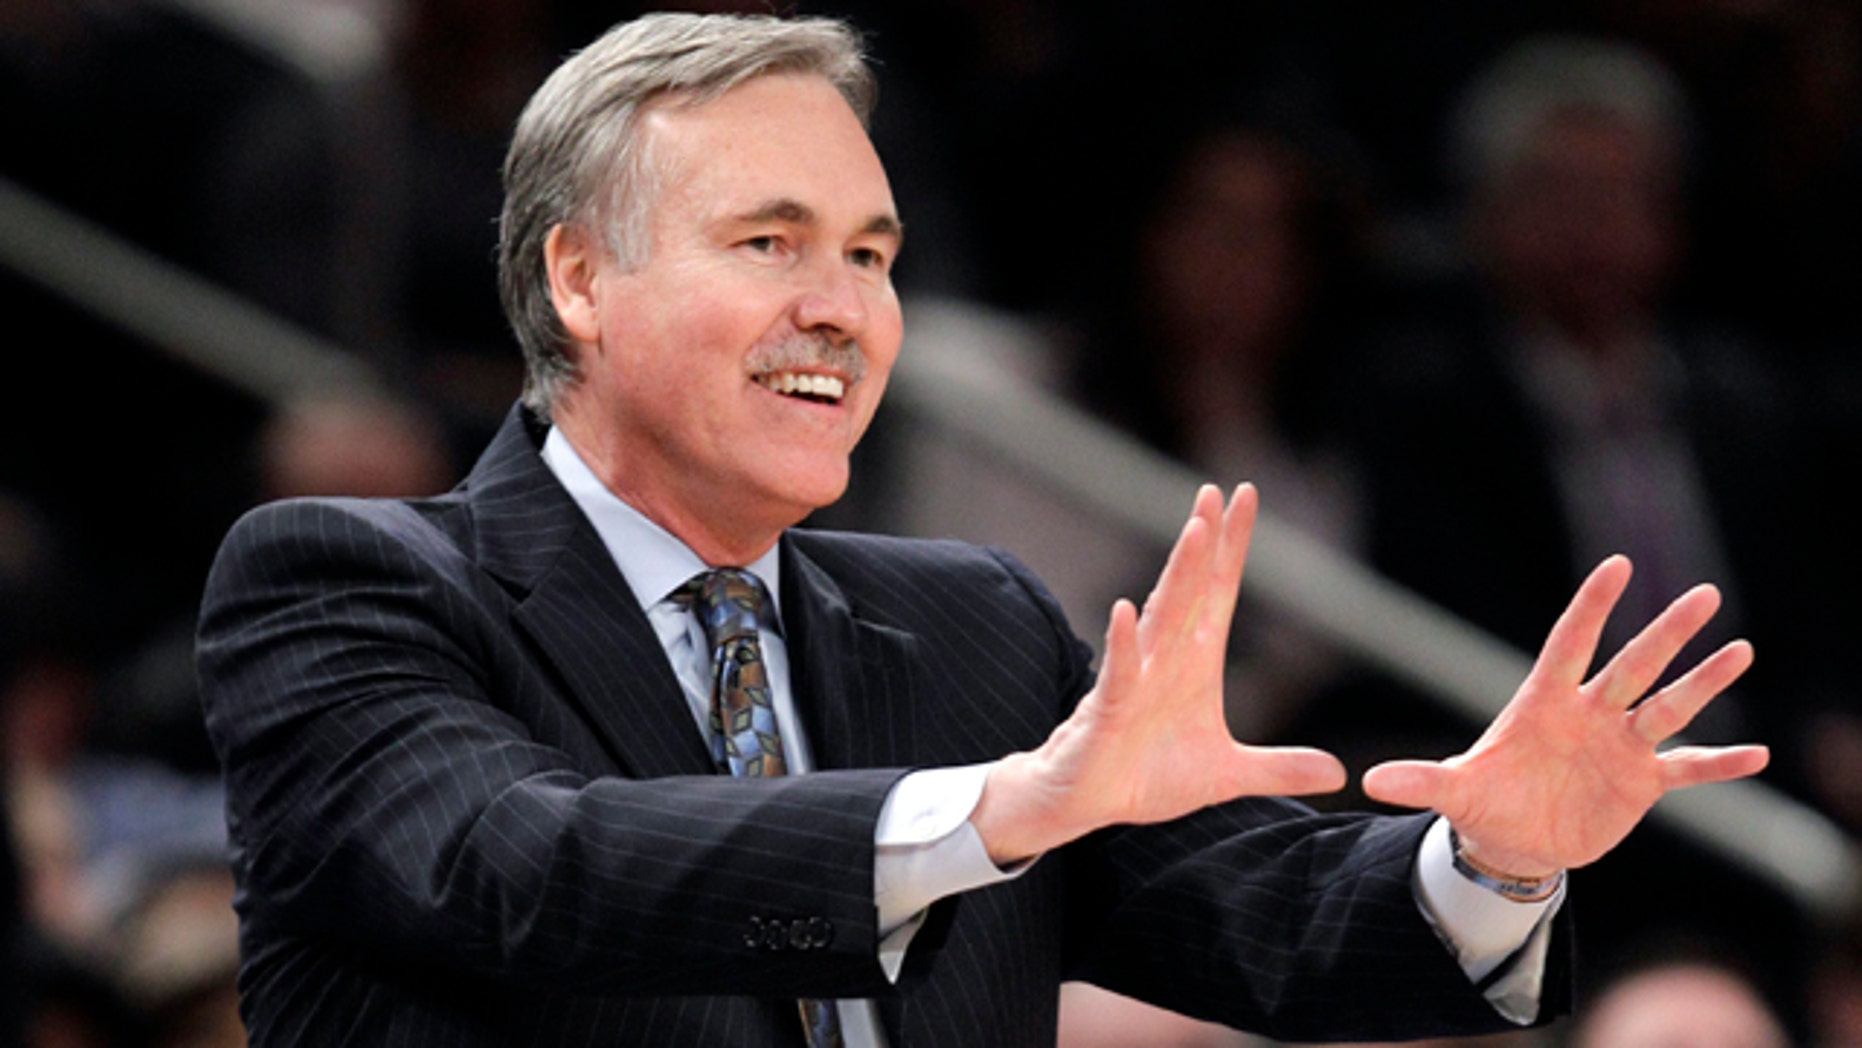 Feb. 22, 2012: Then-New York Knicks coach Mike D'Antoni gestures in the second half of an NBA basketball game against the Atlanta Hawks in  New York. (AP)